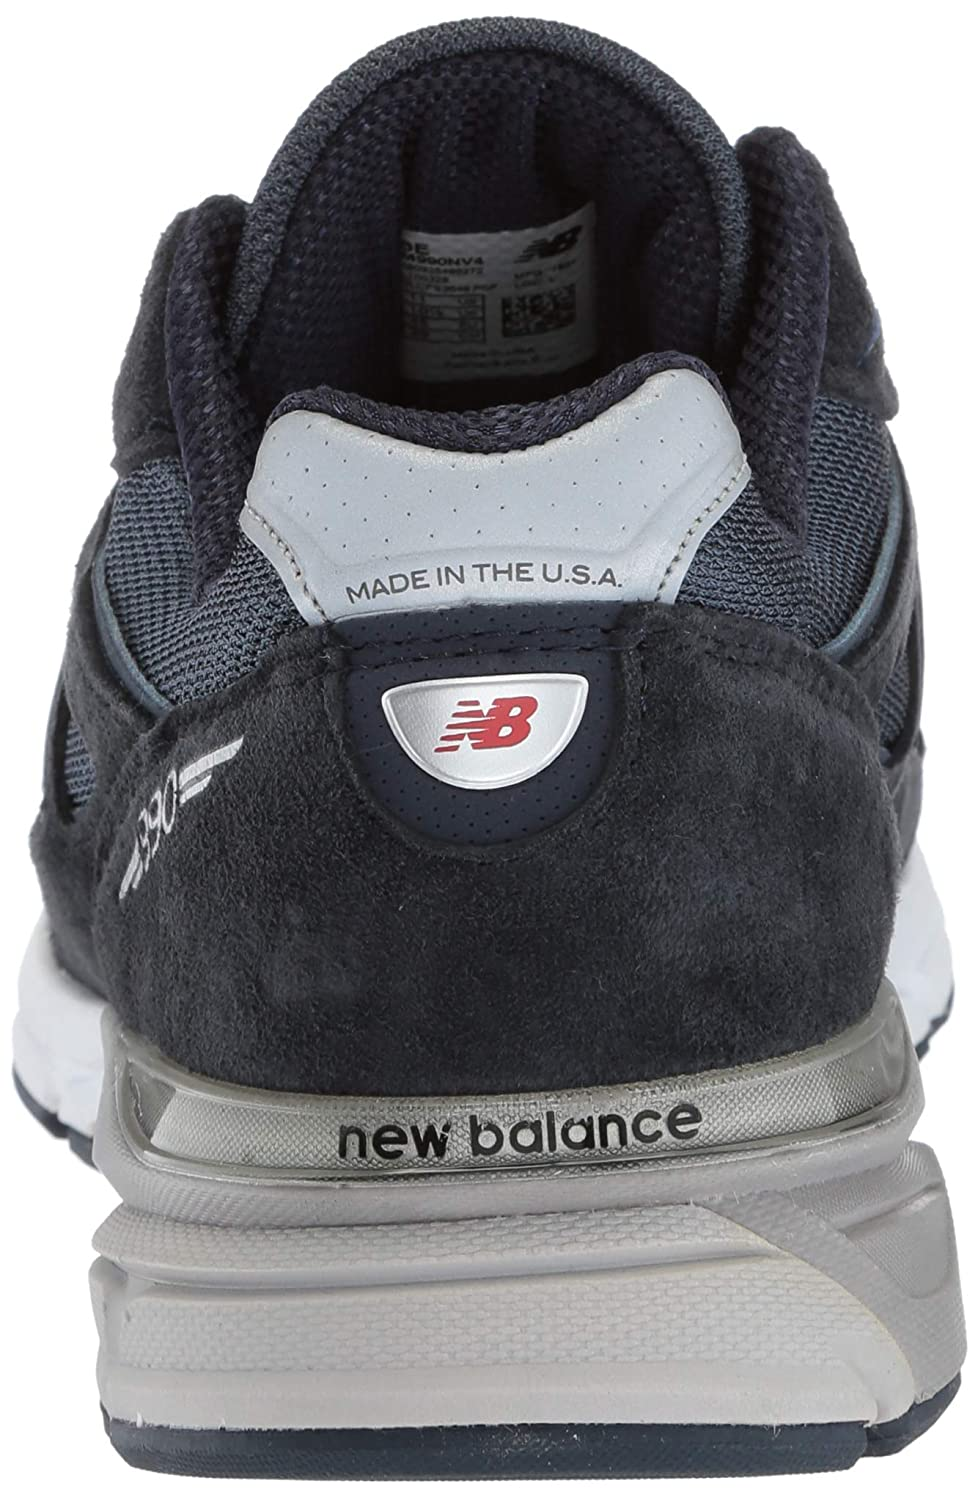 New-Balance-990-990v4-Classicc-Retro-Fashion-Sneaker-Made-in-USA thumbnail 81